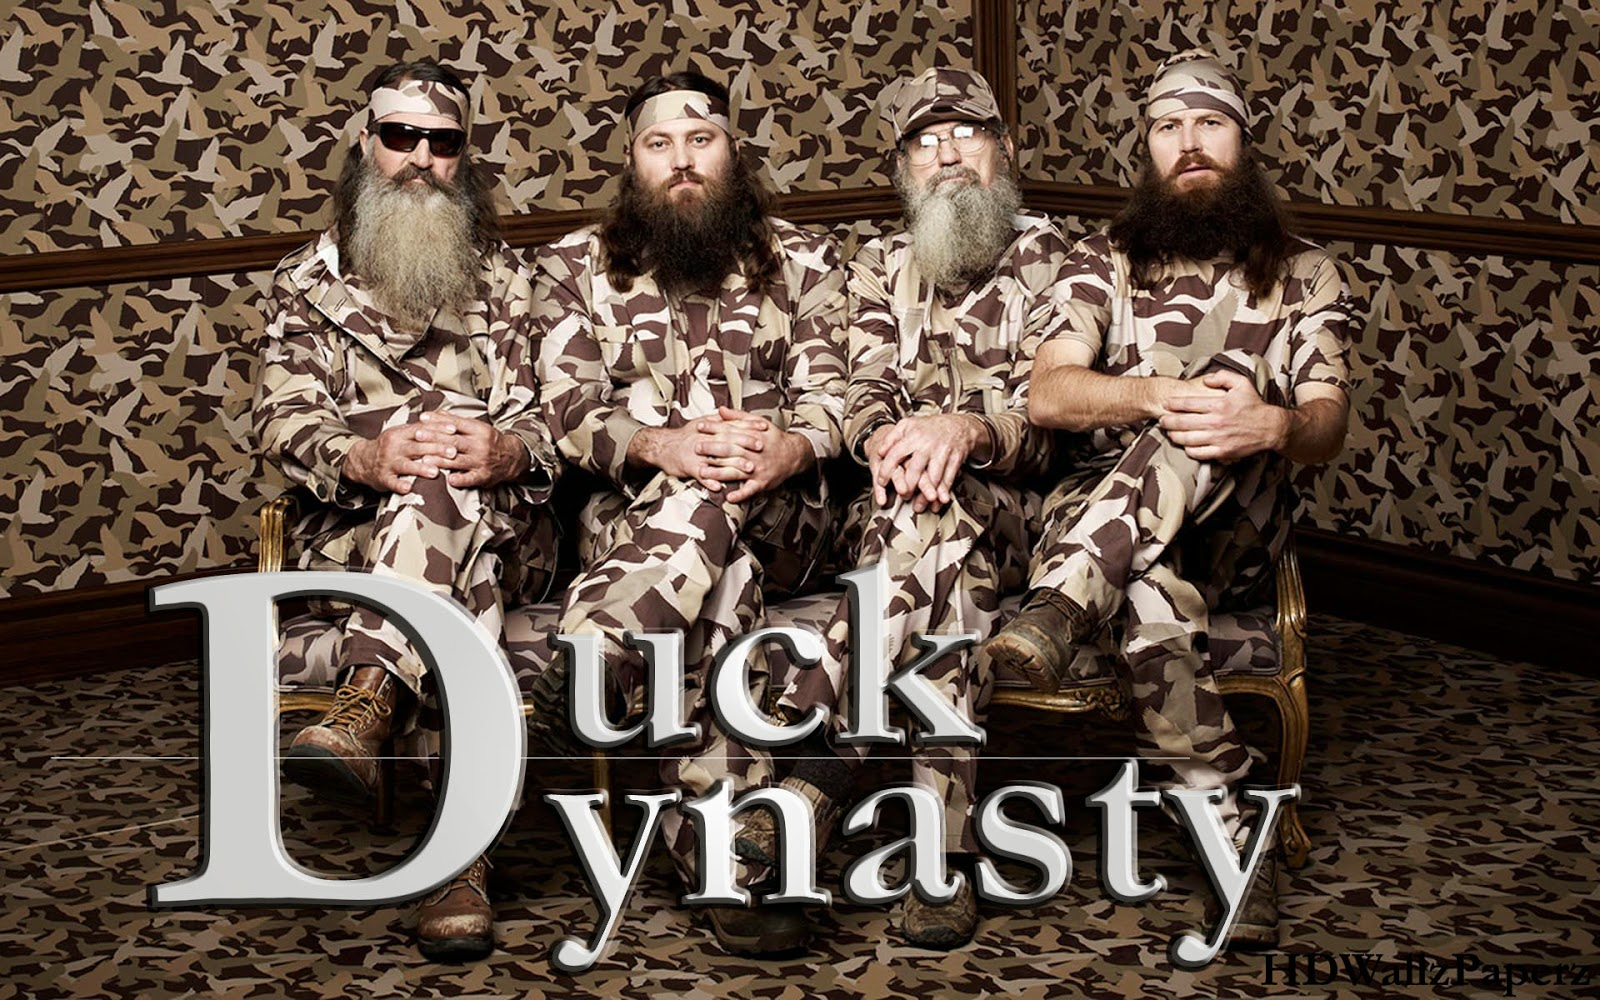 duck dynasty descktop hd wallpaper duck dynasty hd wallpaper 2013